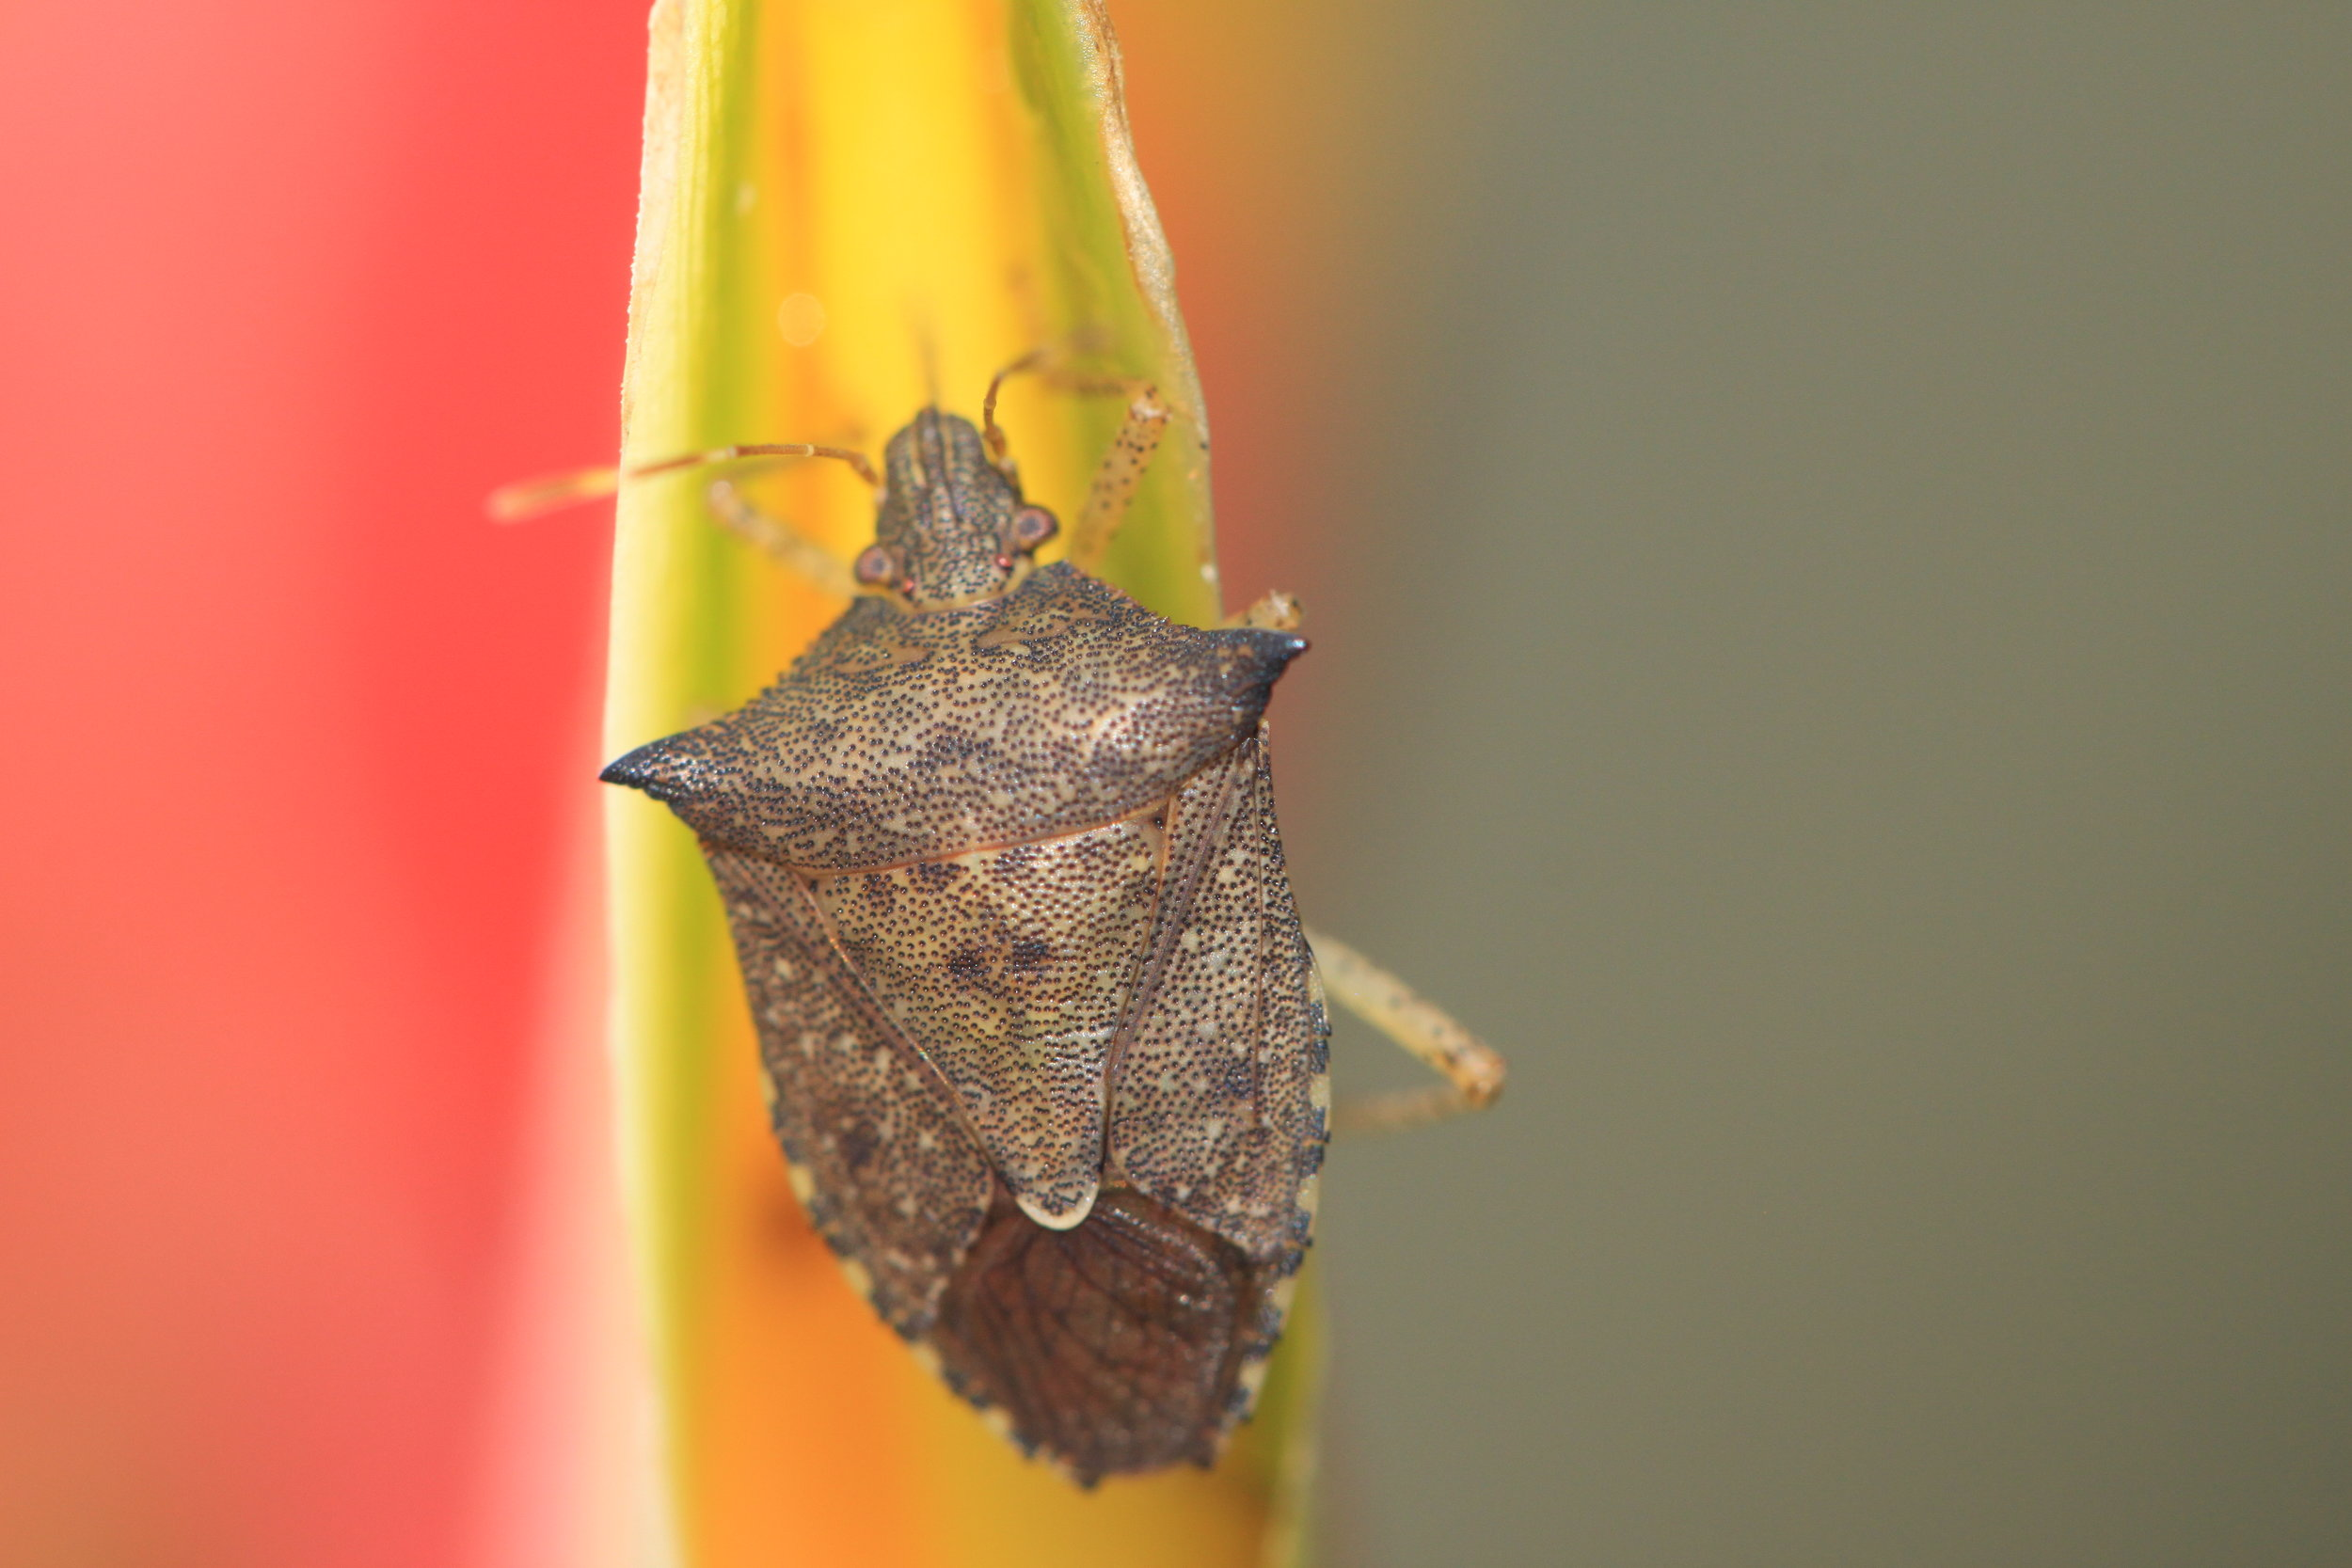 Stink bug, Manuel Antonio, Costa Rica.